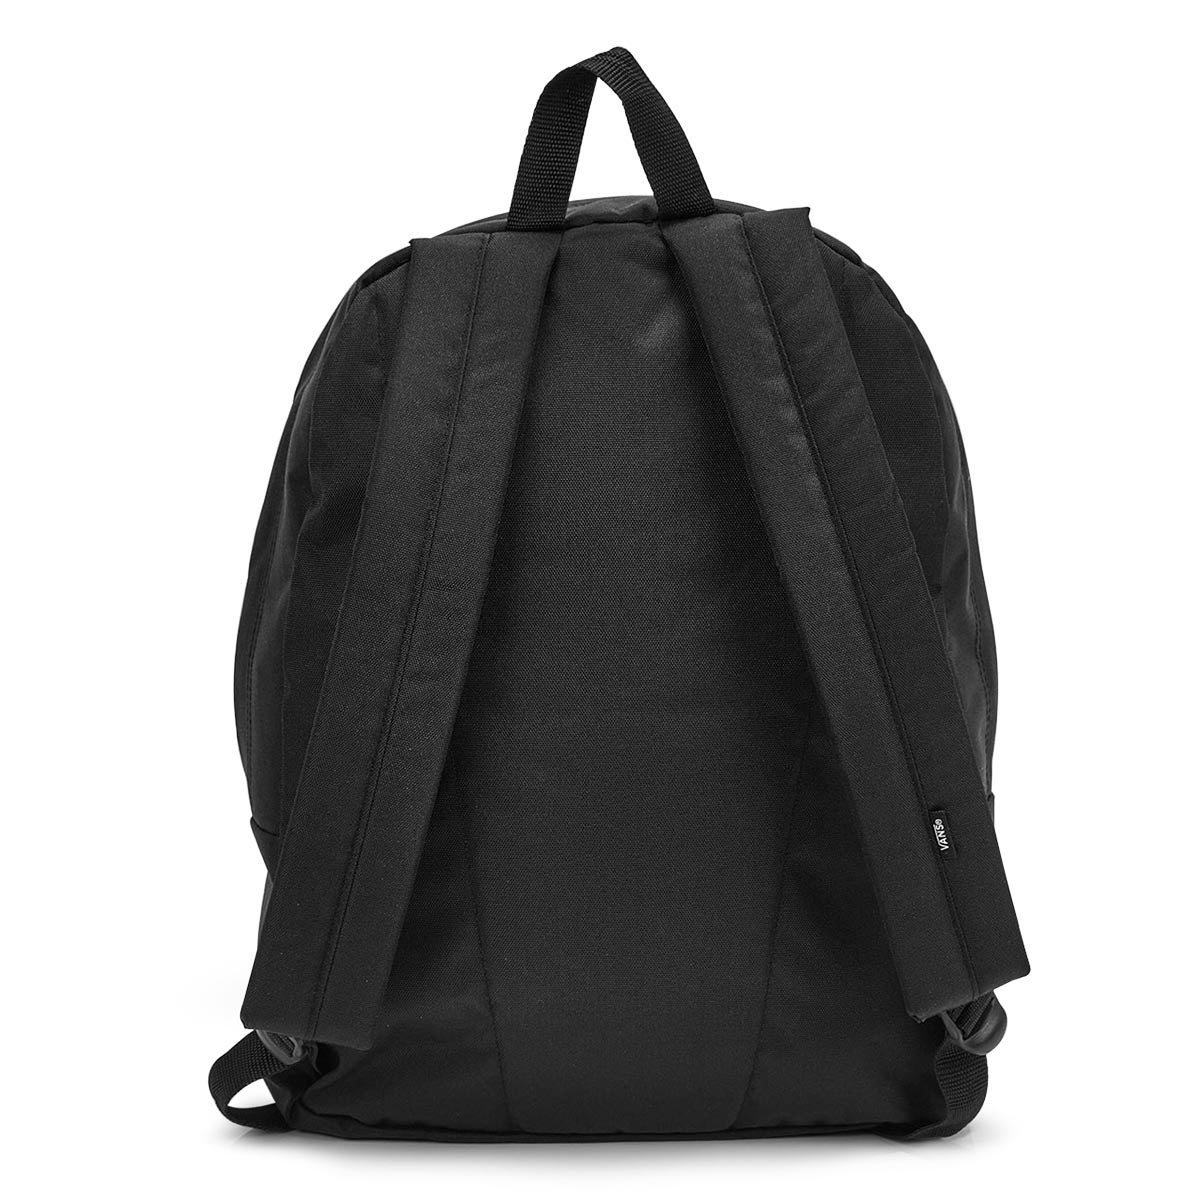 Vans Old Skool II blk/wht backpack